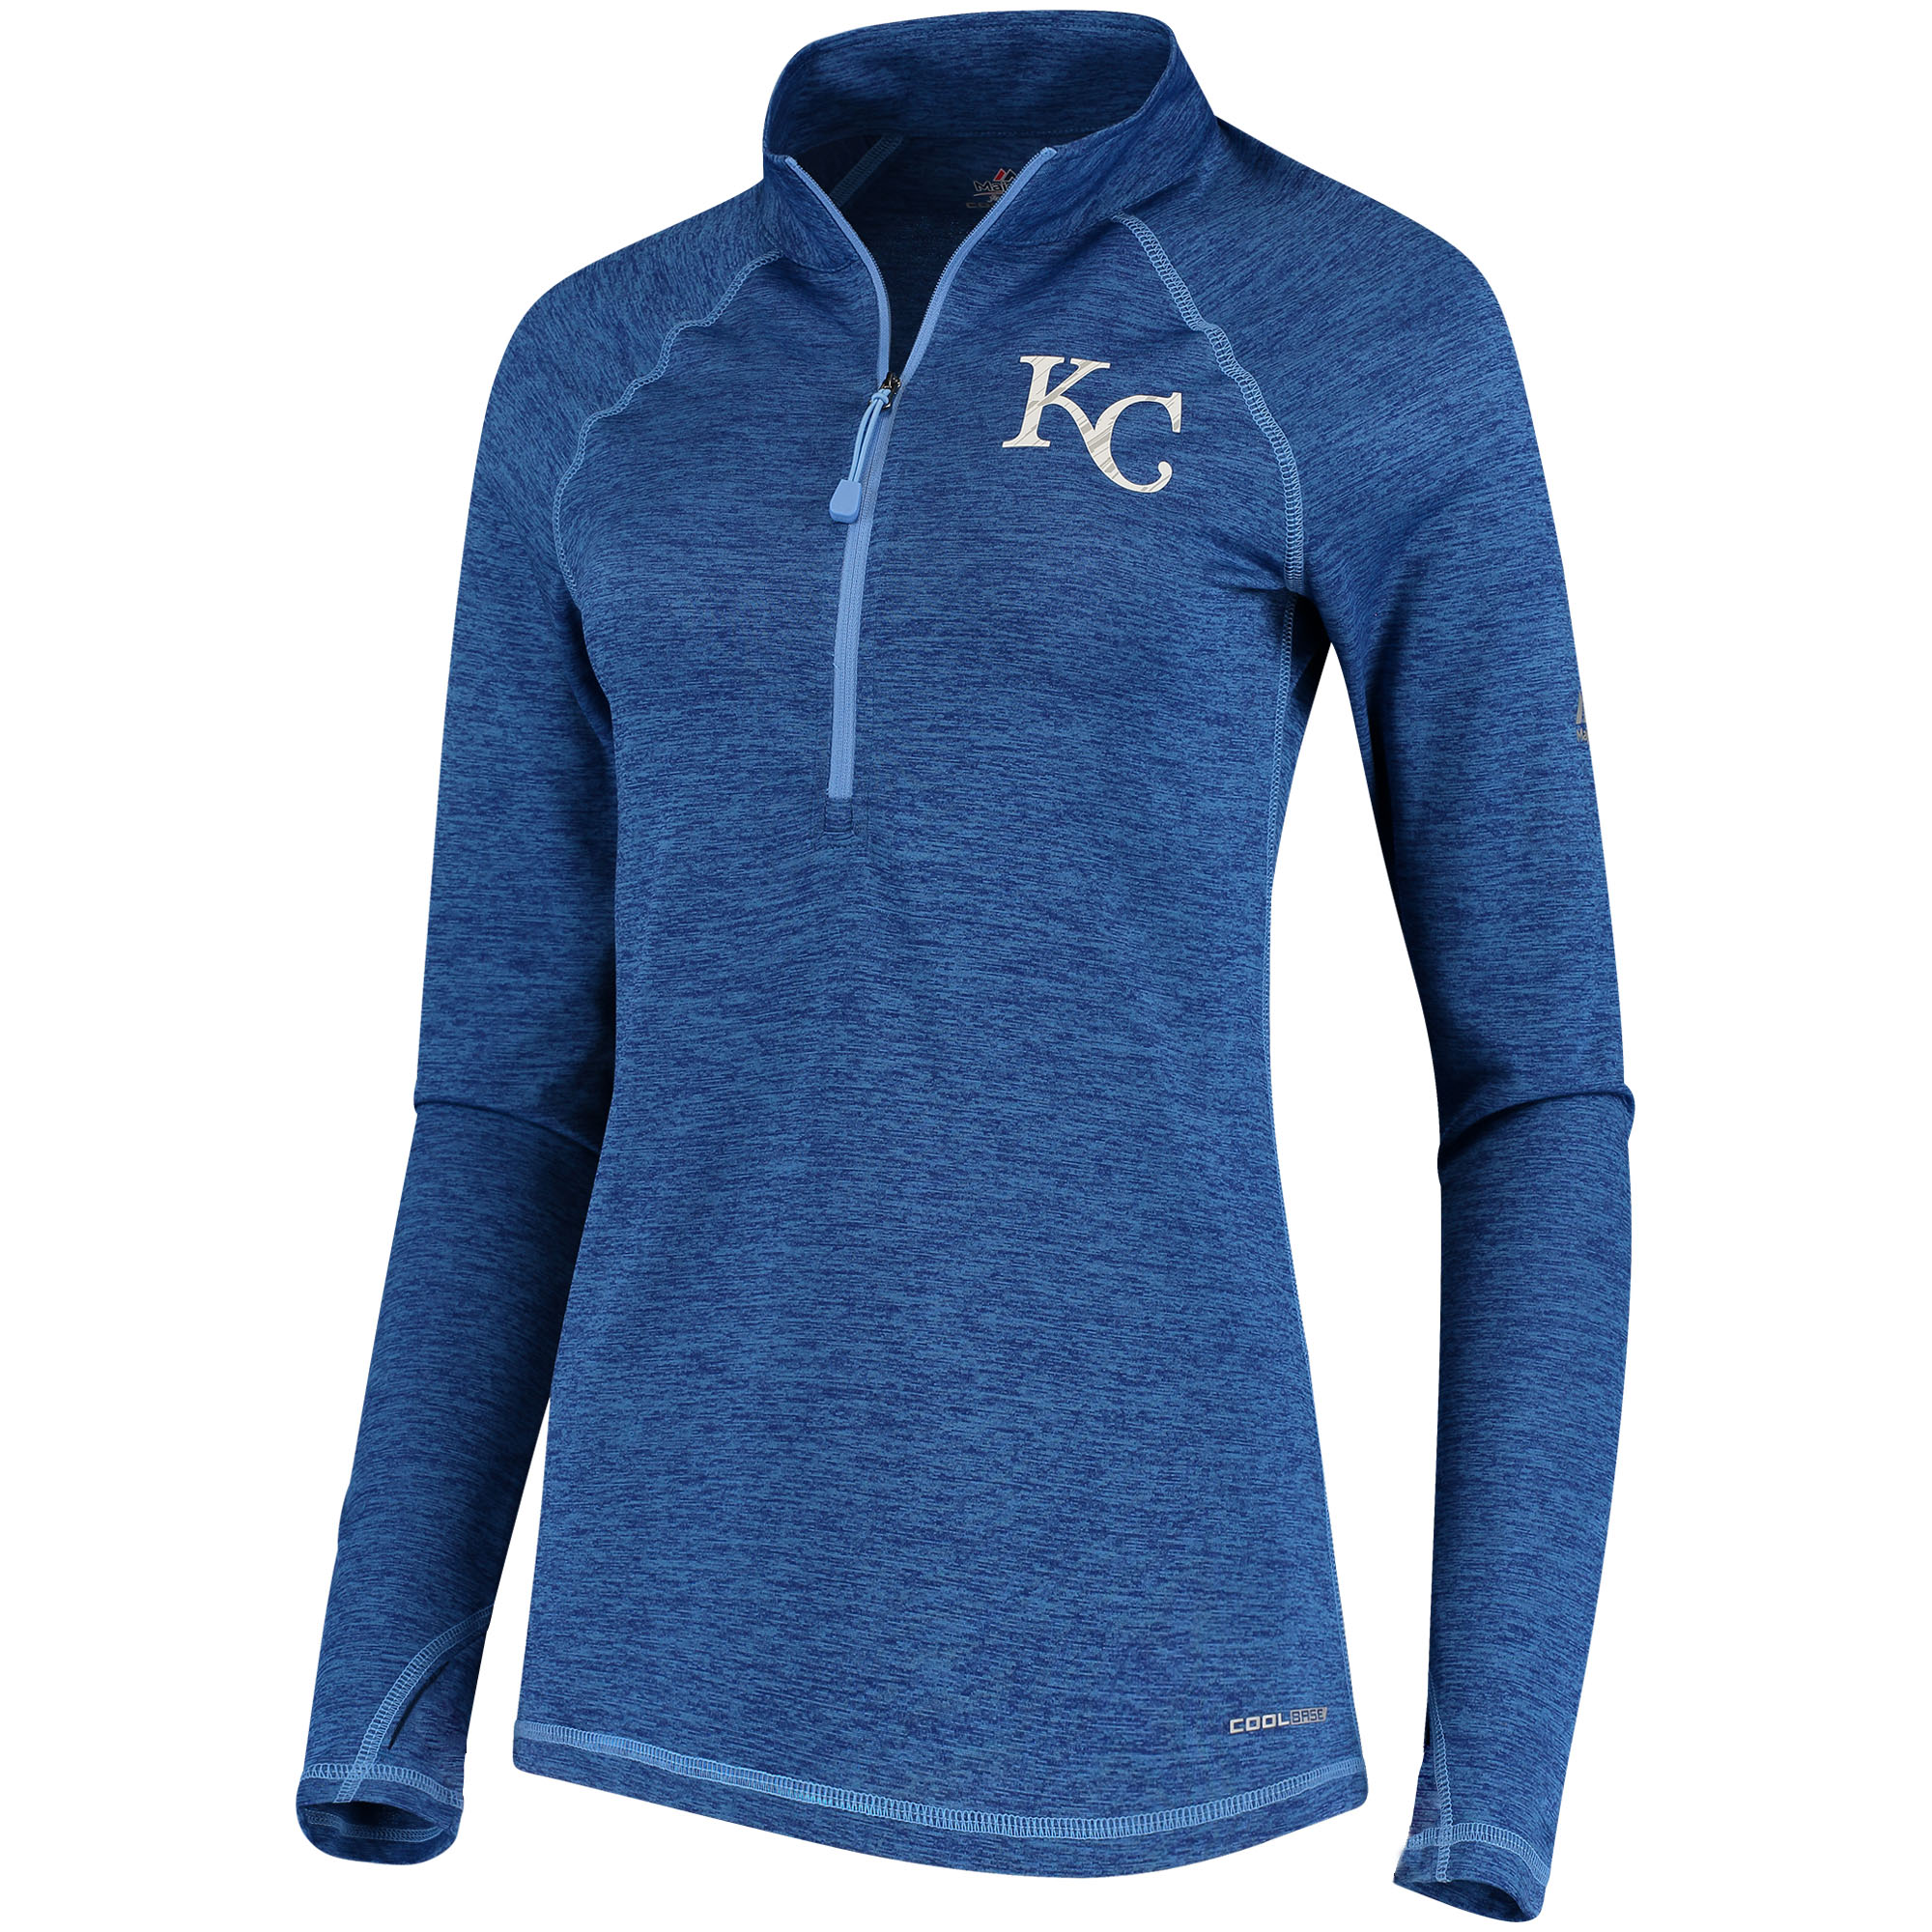 Kansas City Royals Majestic Women's Don't Stop Trying Cool Base Half-Zip Pullover Jacket Royal by MAJESTIC LSG